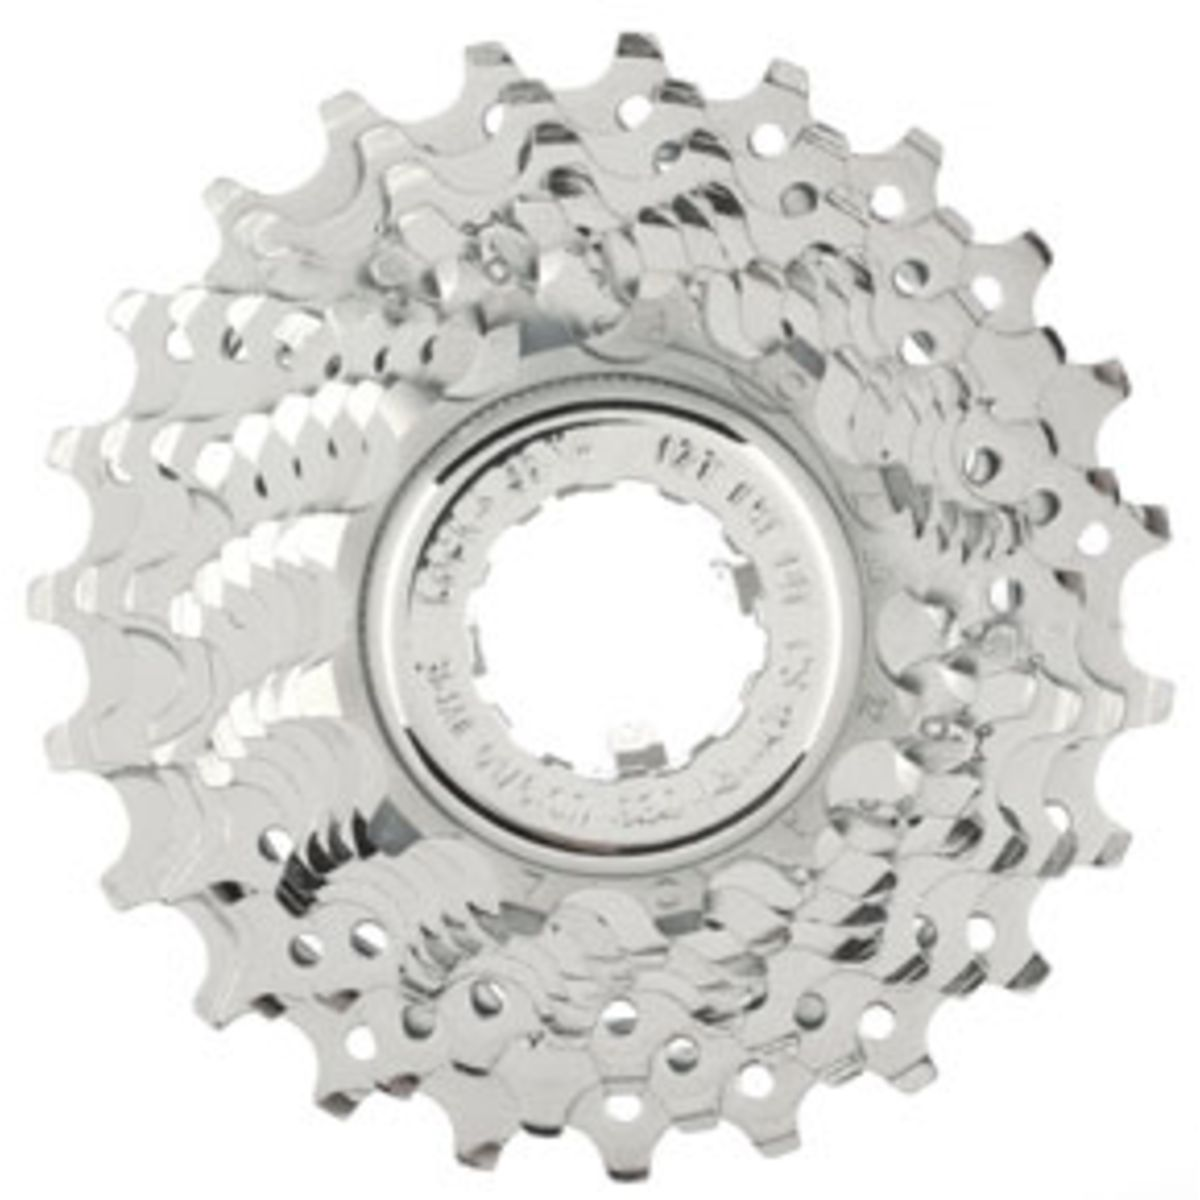 Veloce Ultra-Drive 9-speed cassette 12-23 ratio